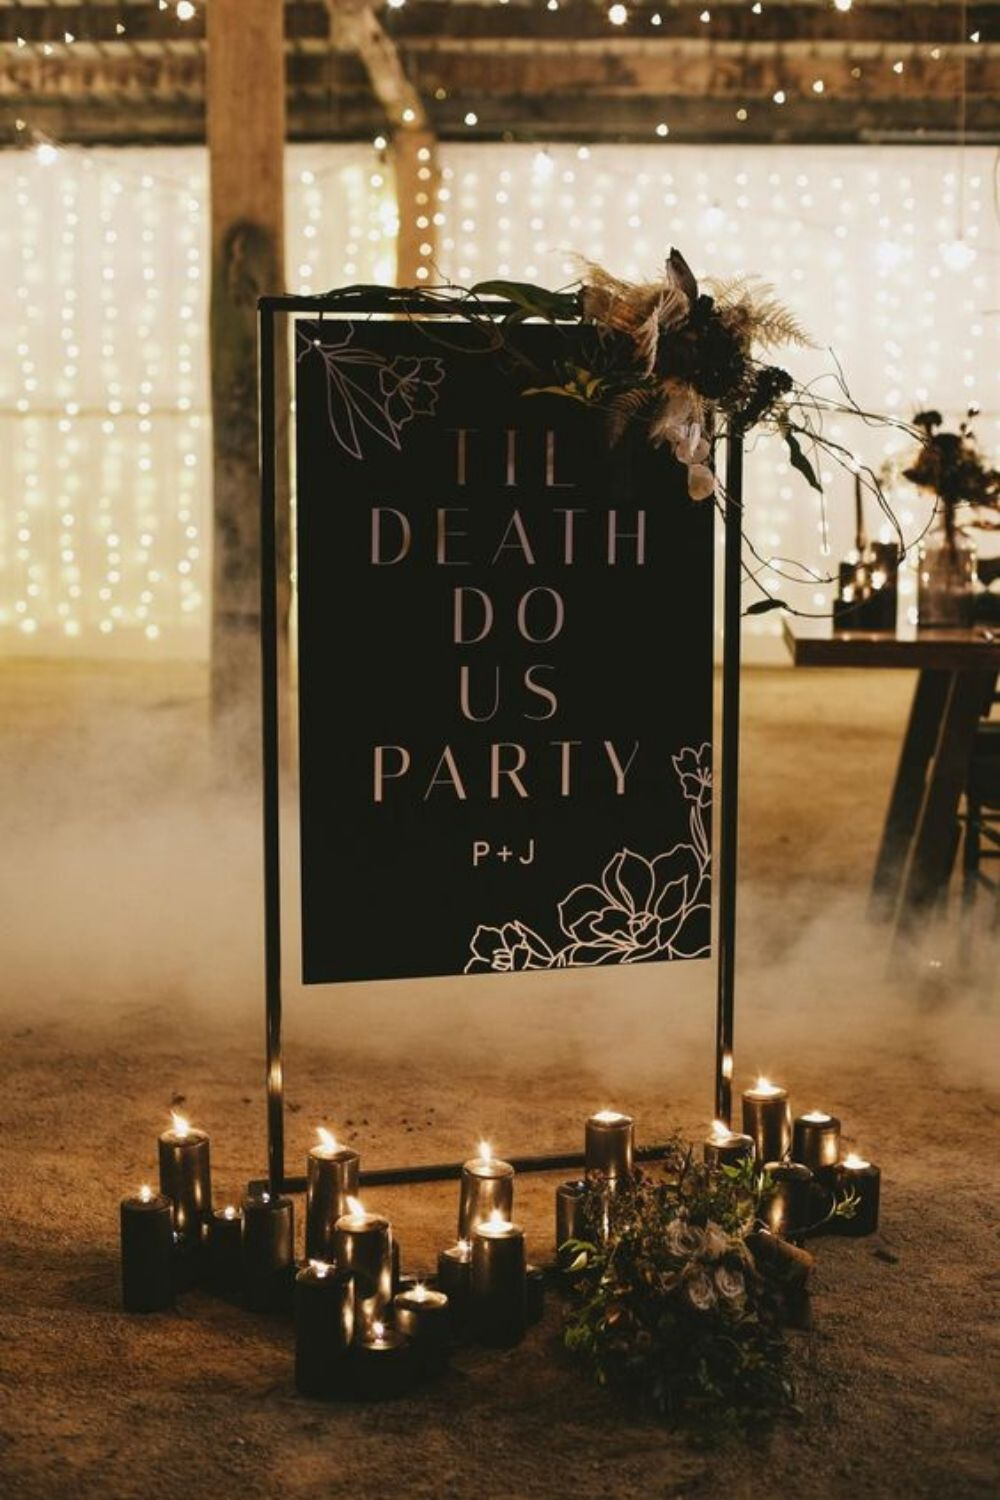 Forget the old cliche of white dresses and cakes with pink frosting; we're talking about a spooky wedding! This year's hottest trend is taking your favorite horror movie and turning it into an event.